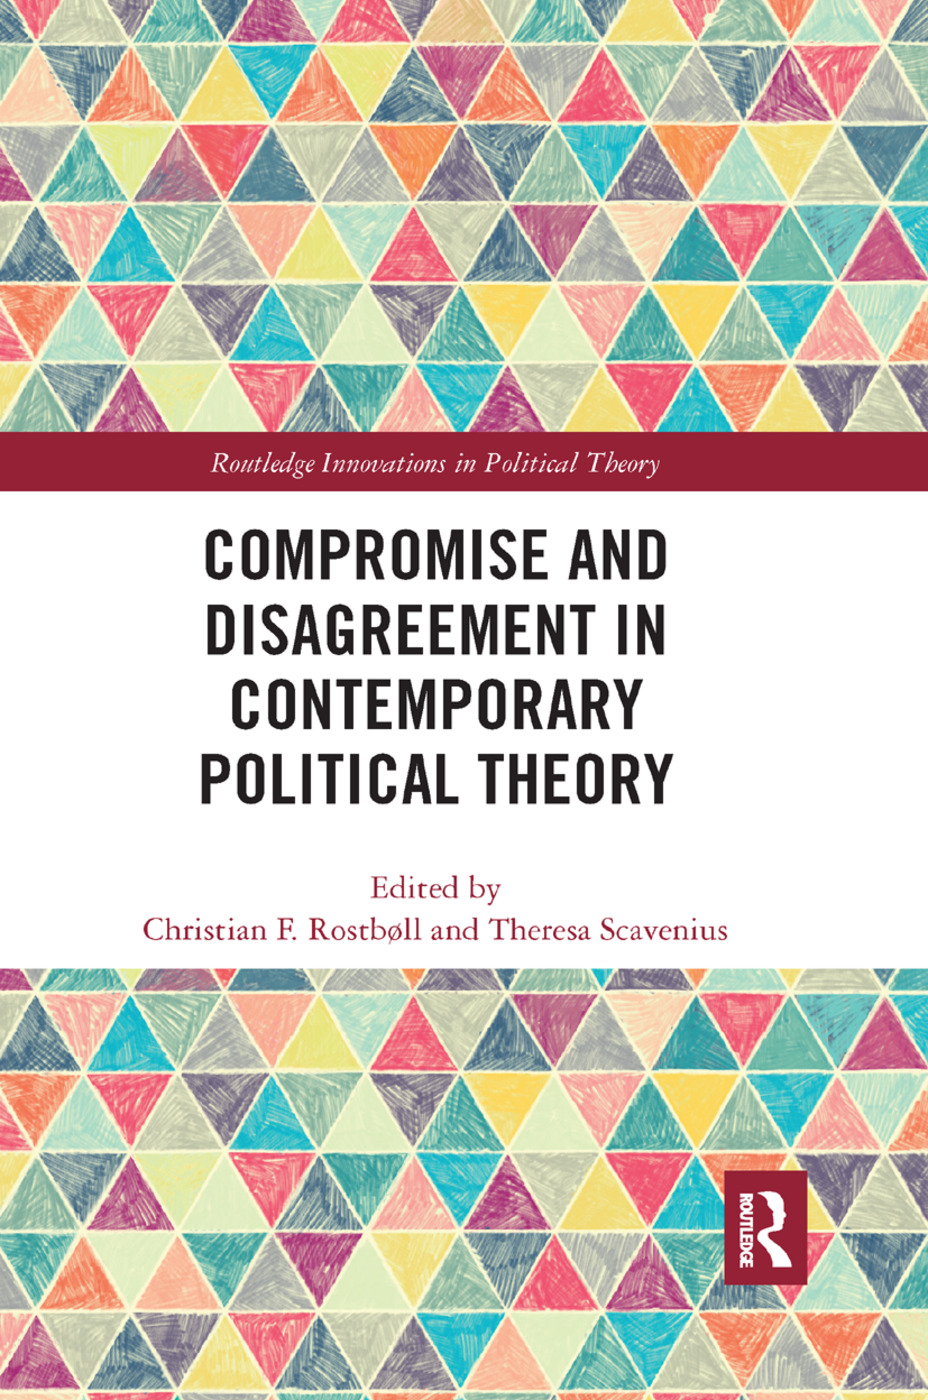 Compromise and Disagreement in Contemporary Political Theory: 1st Edition (Paperback) book cover